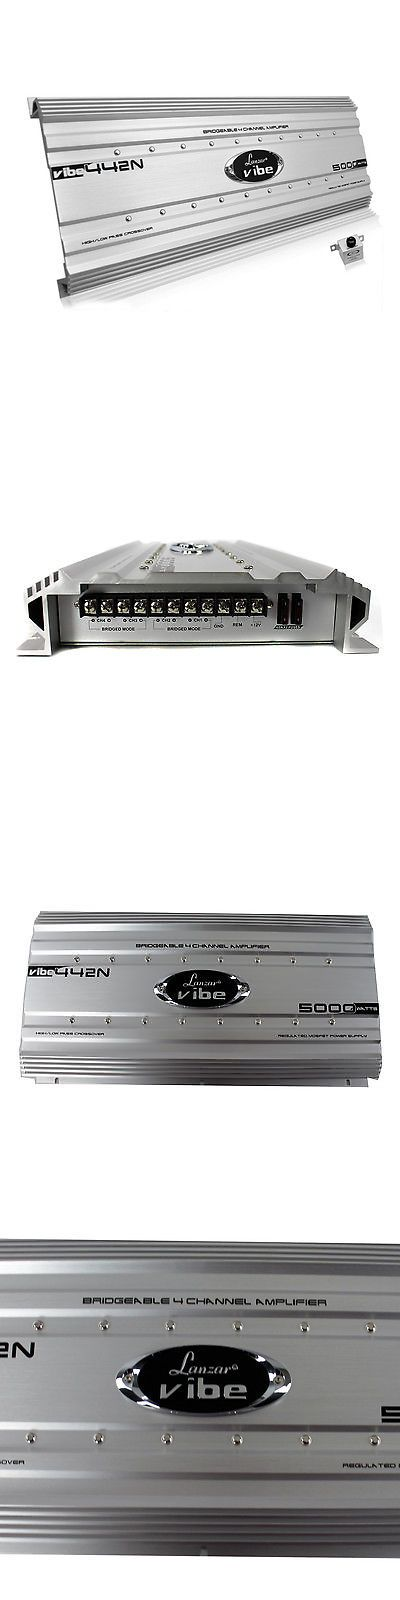 Car Amplifiers: Lanzar 5000 Watt 4 Channel Bridgeable Car Audio Stereo Amplifier With Bass Knob -> BUY IT NOW ONLY: $147.95 on eBay!